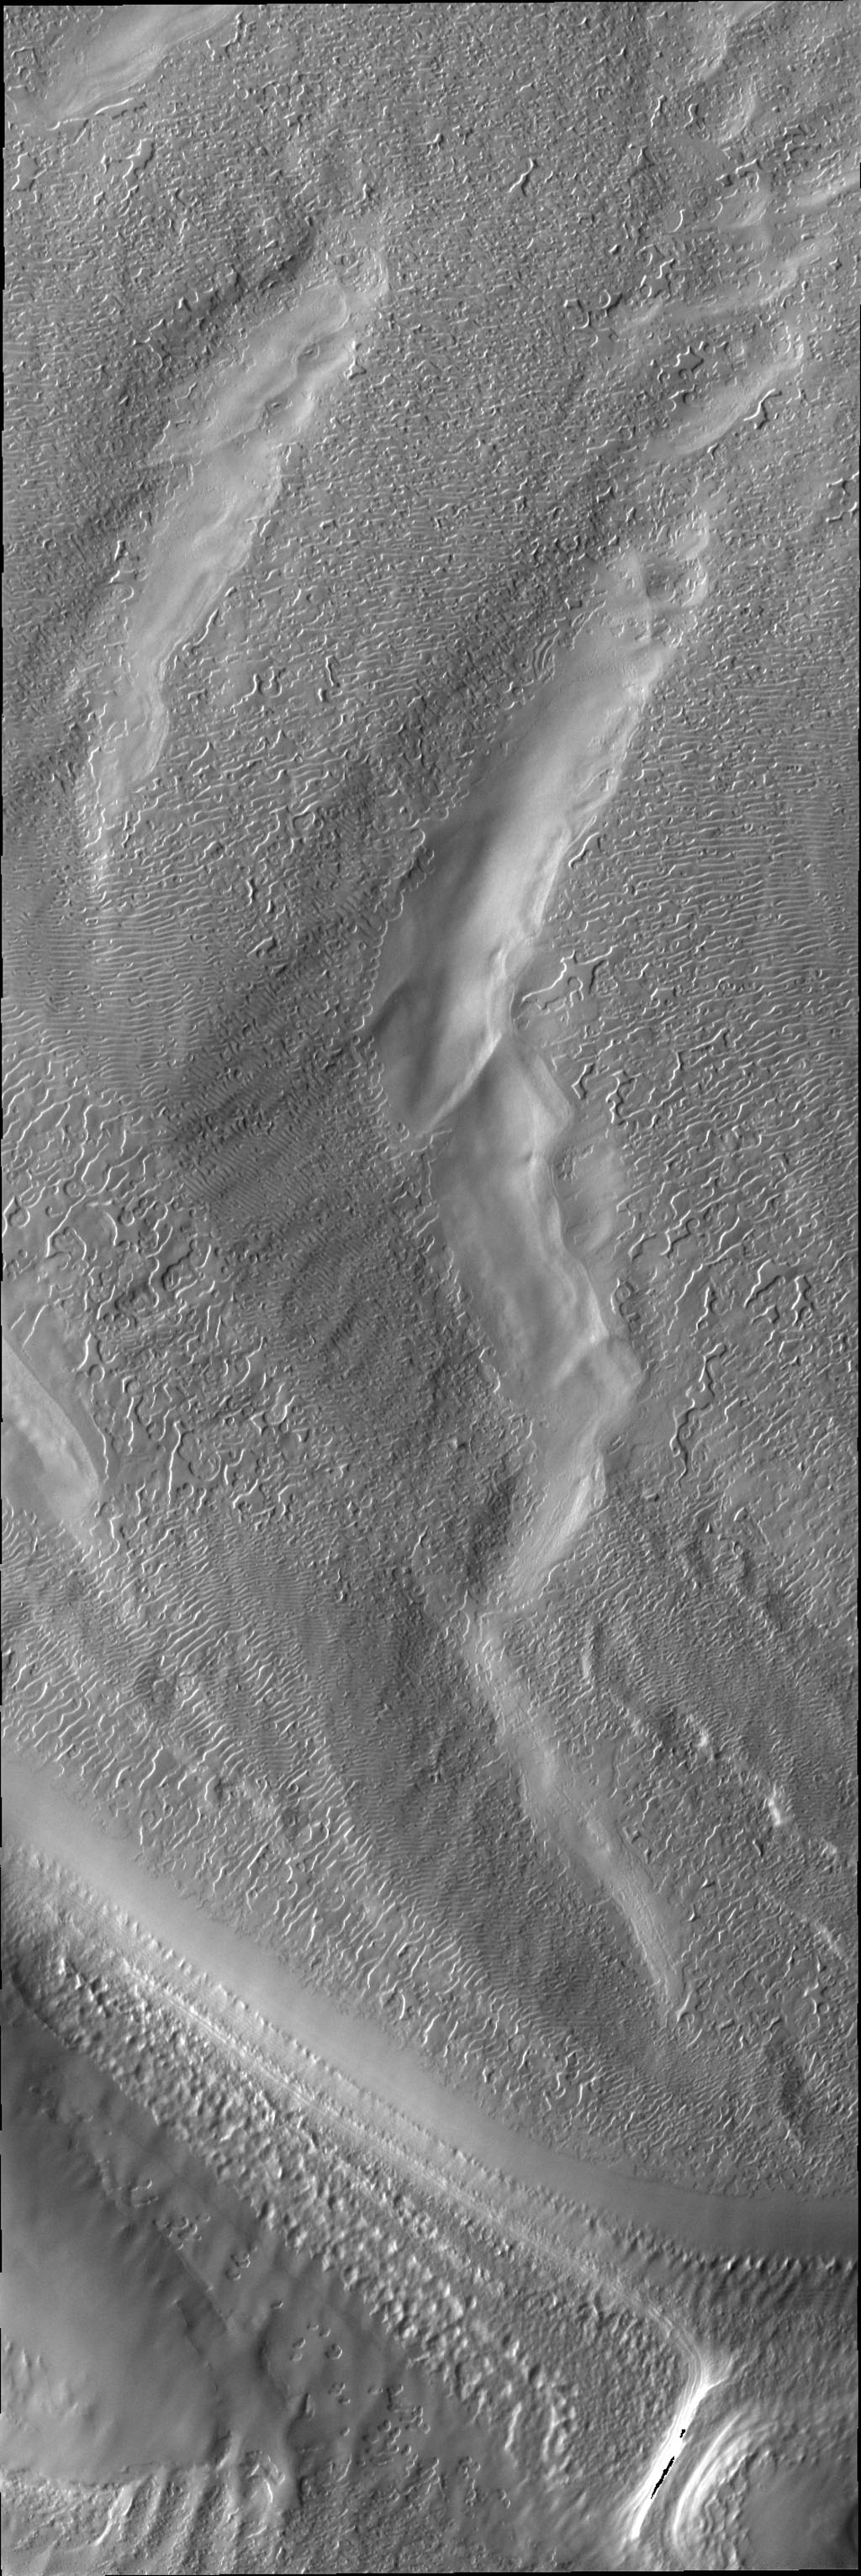 This image from NASA's 2001 Mars Odyssey spacecraft shows a region of the south pole where the surface has developed linear markings, a pattern not unlike a thumbprint.